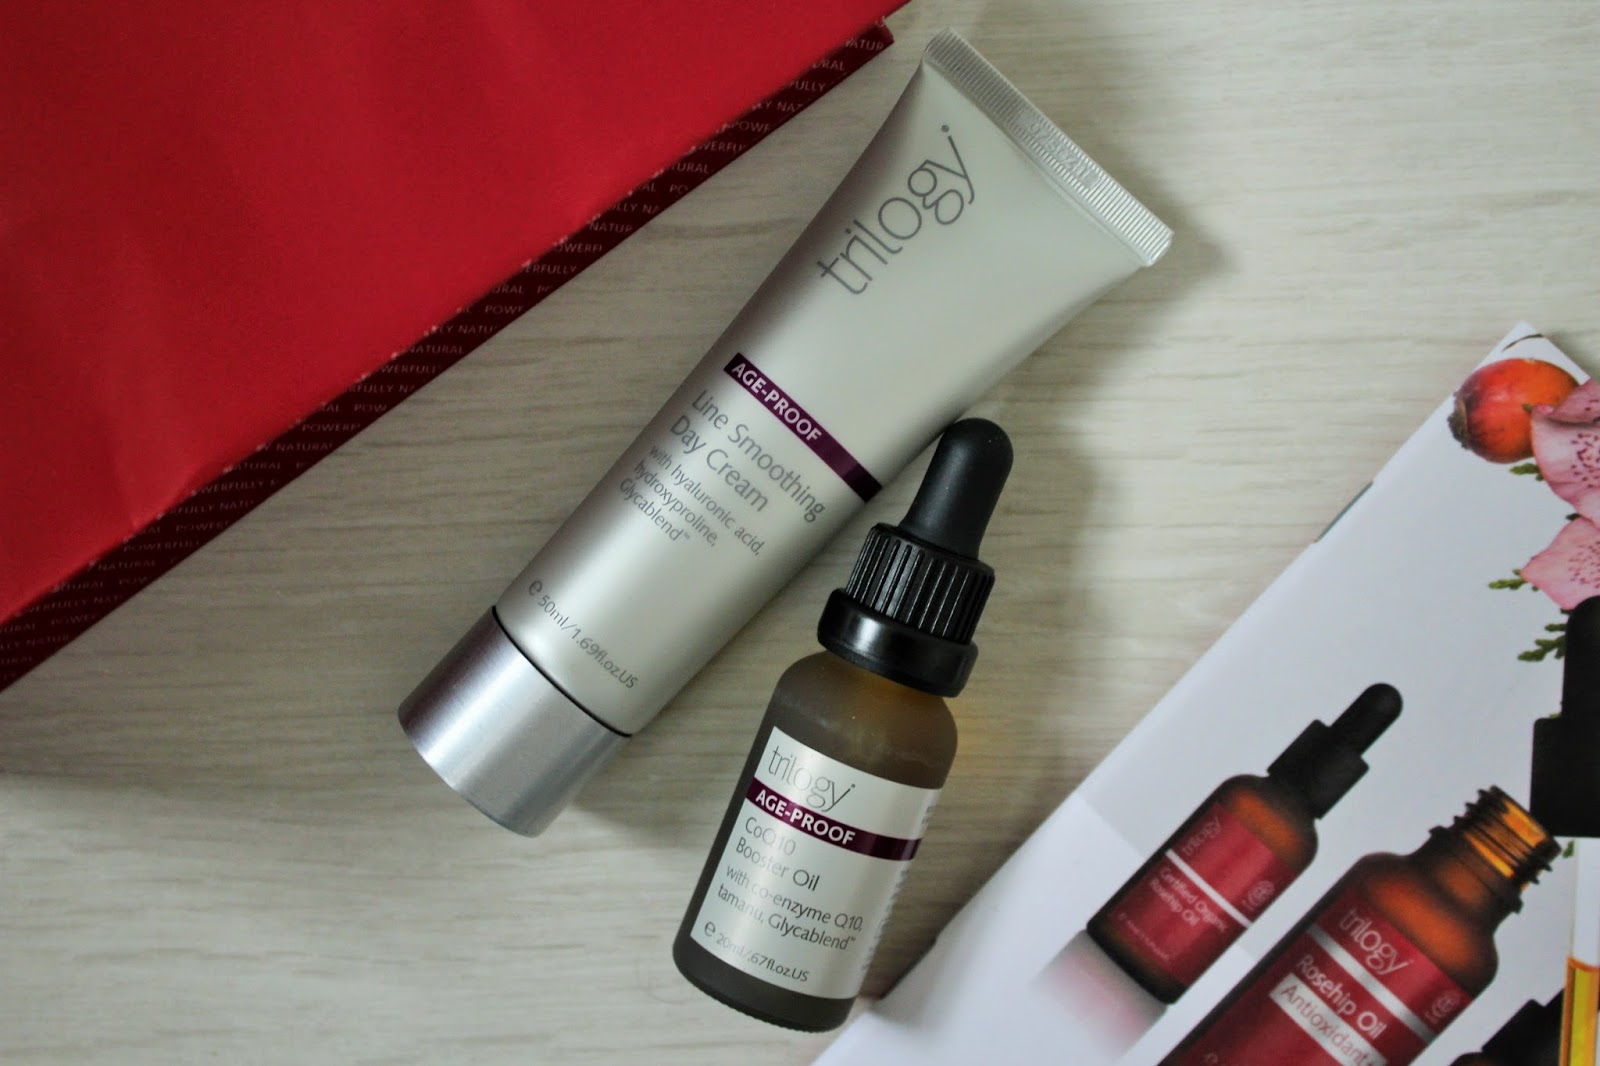 Trilogy Age-Proof Skincare - Introduction and Review